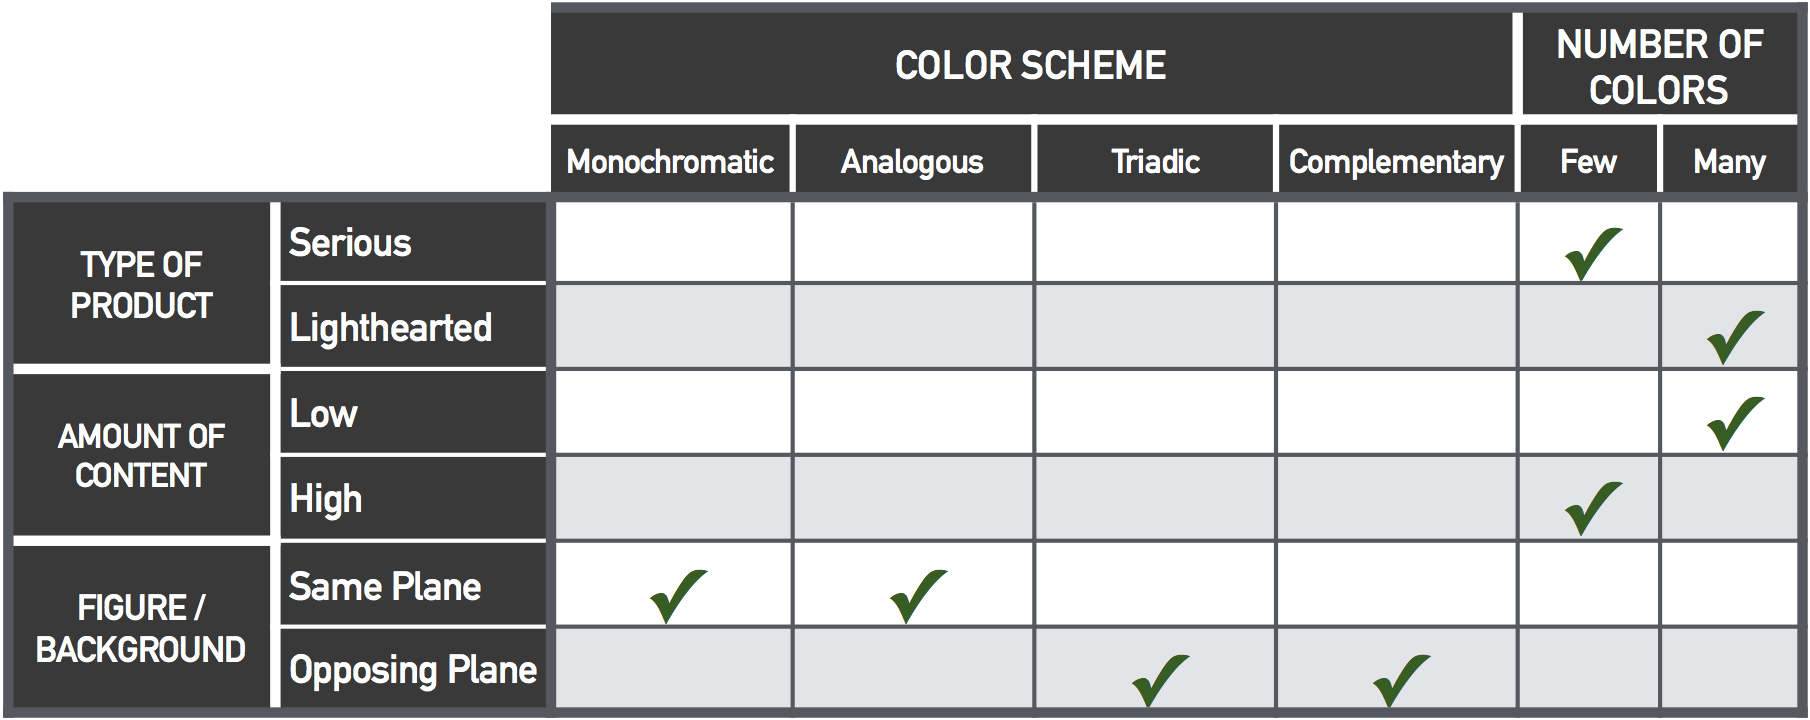 Best Color Schemes for Various Situations